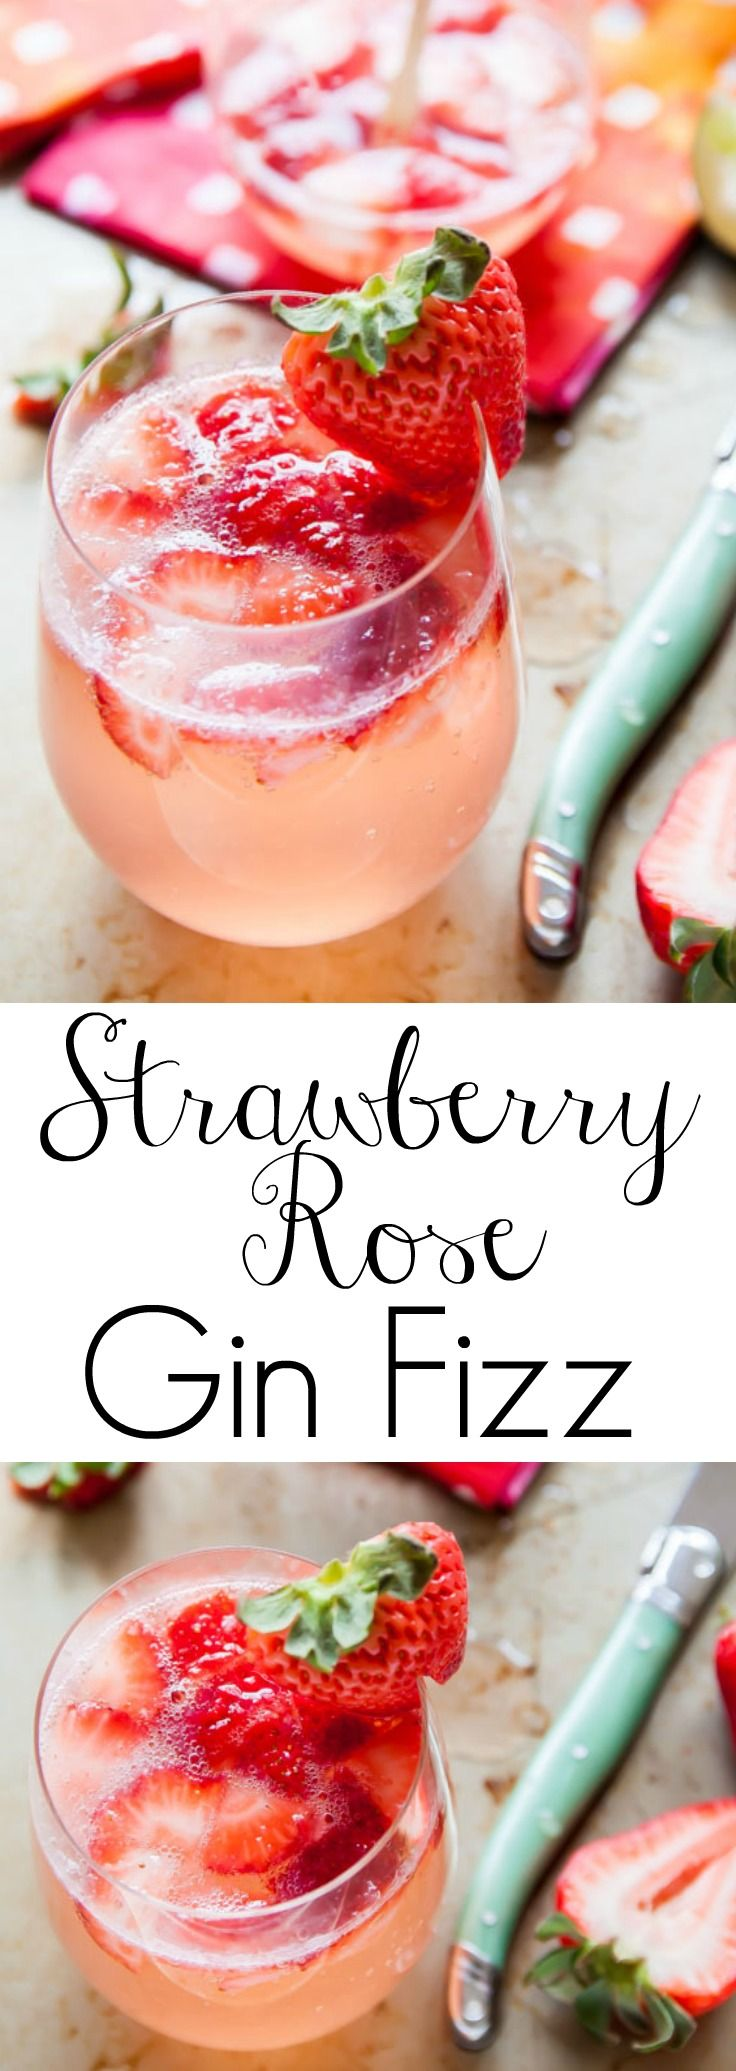 Strawberry cocktail with rose water, gin and a little fizz! So festive for Valentine's Day!